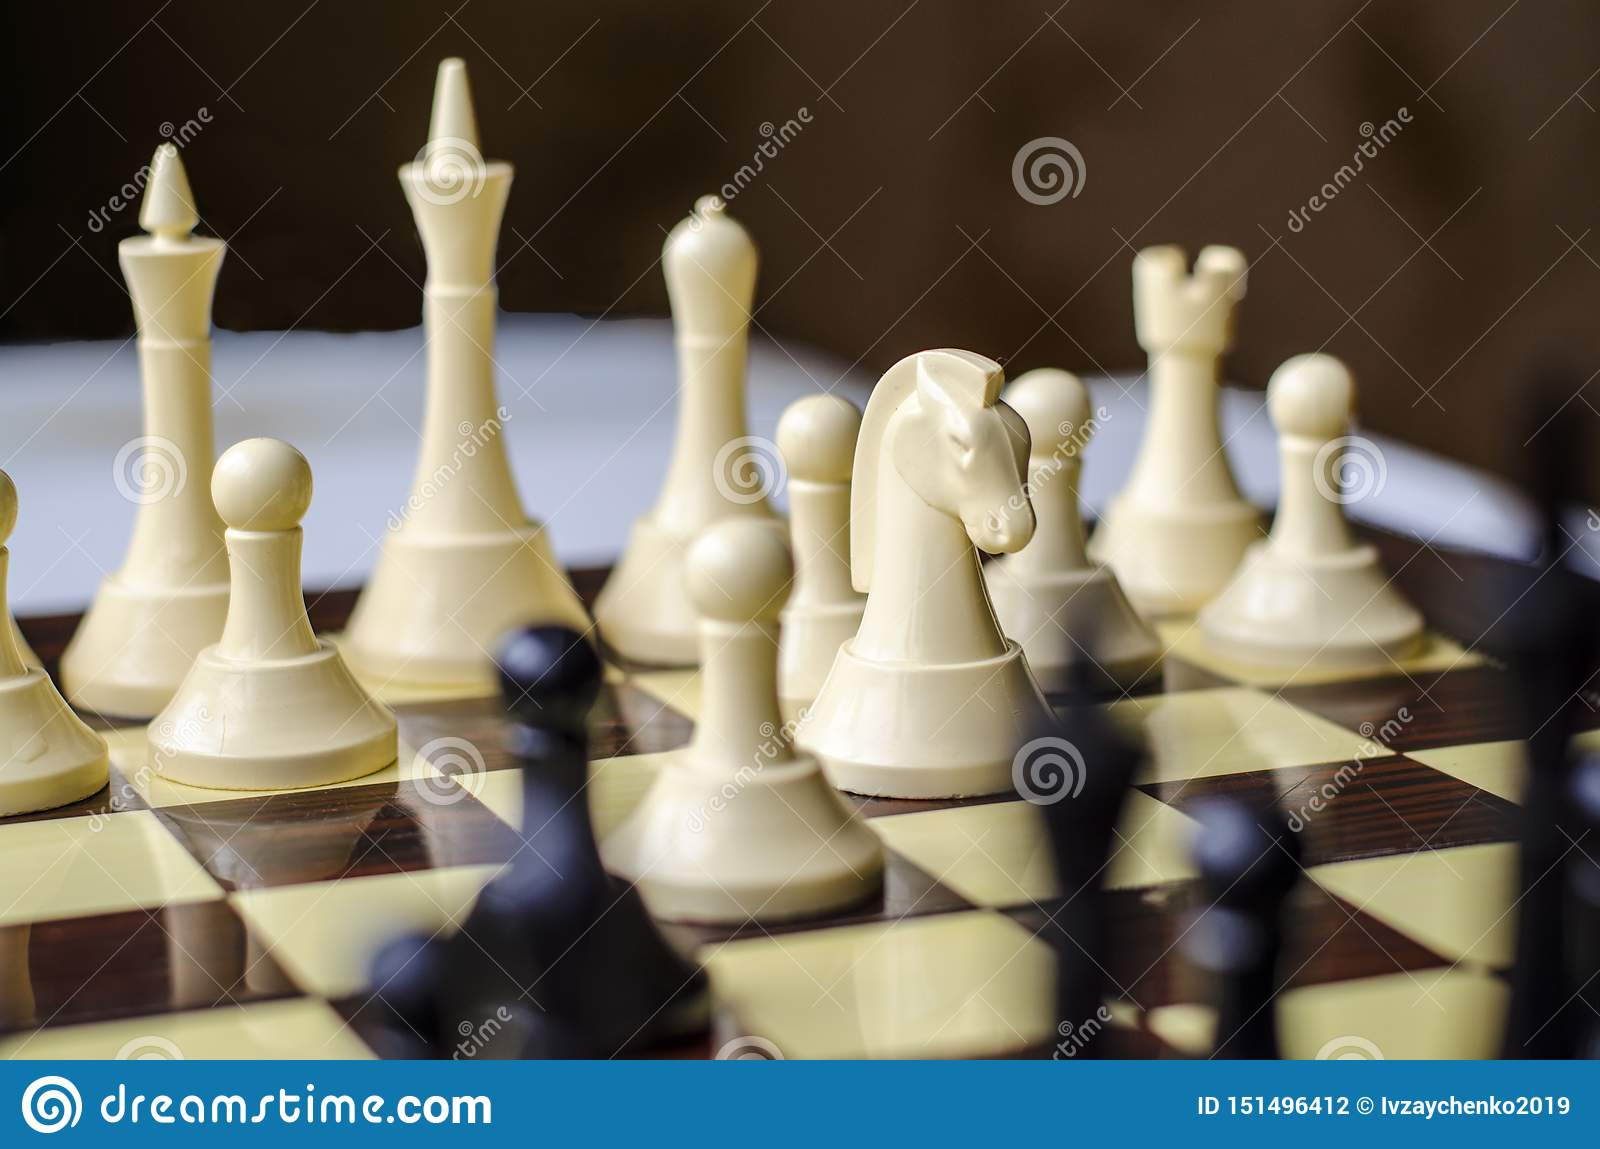 Chess game, horse is the piece in focus